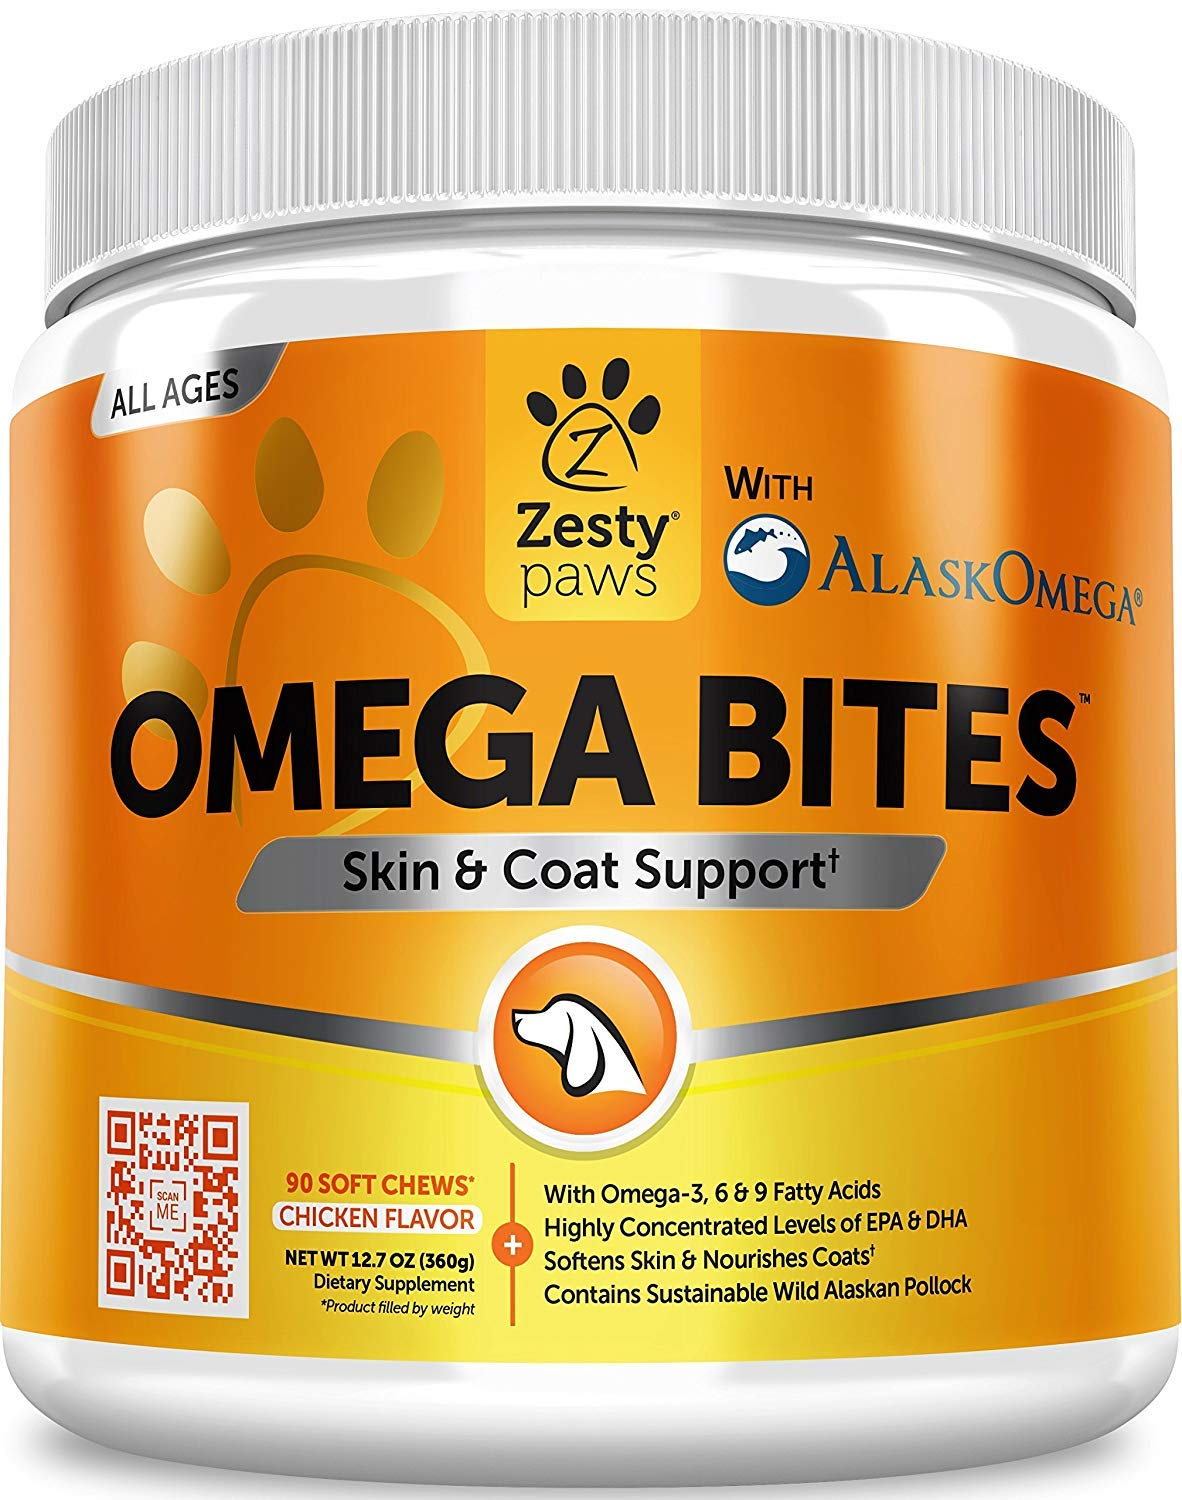 a367a0298e64 Zesty Paws Omega 3 Soft Chews for Dogs - with AlaskOmega Fish Oil for EPA    DHA Fatty Acids - for Shiny Coats   Itch Free Skin - Natural Dog Hip   ...